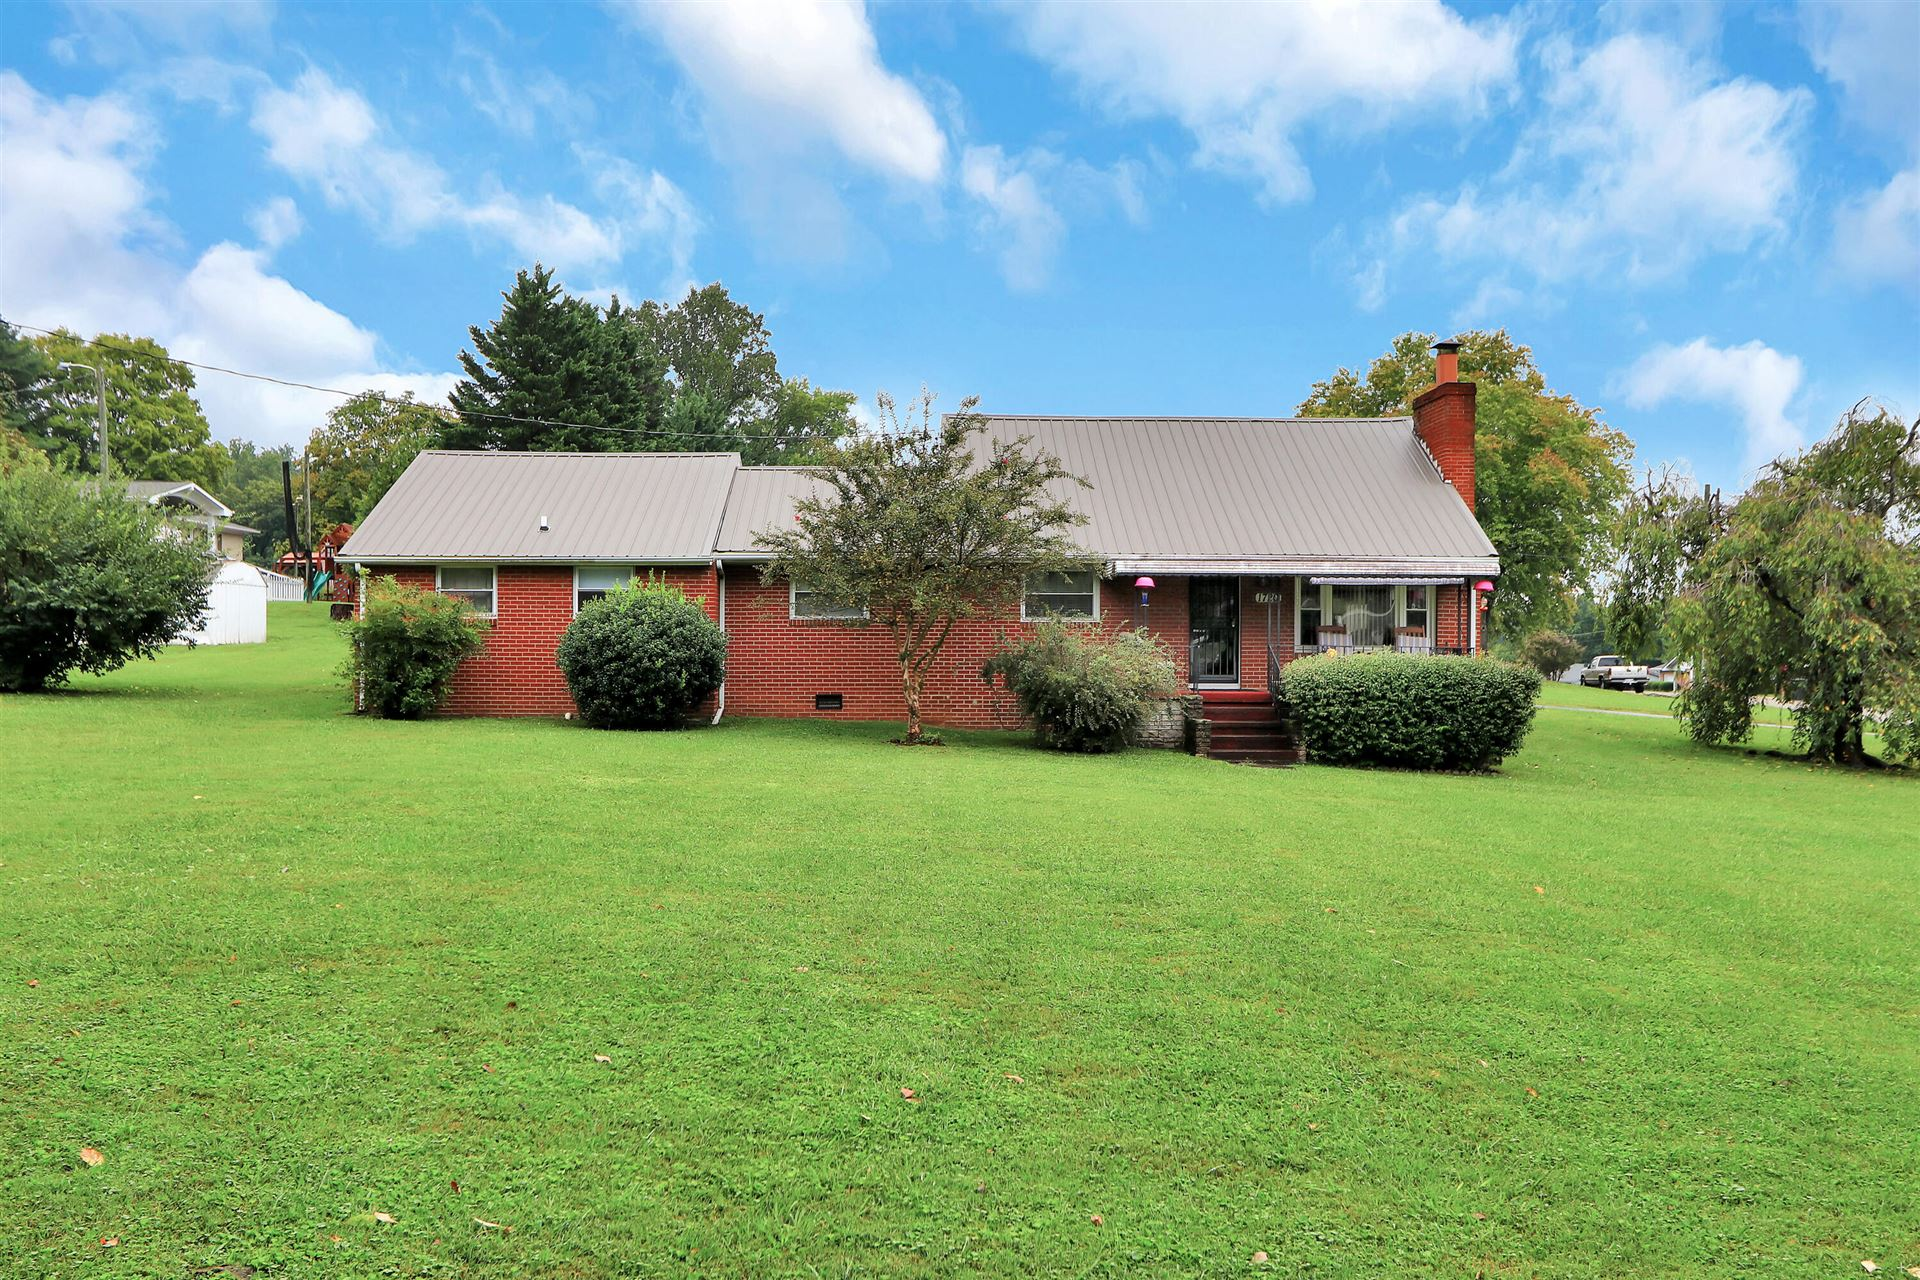 Photo of 1720 Ault Rd, Knoxville, TN 37914 (MLS # 1168512)